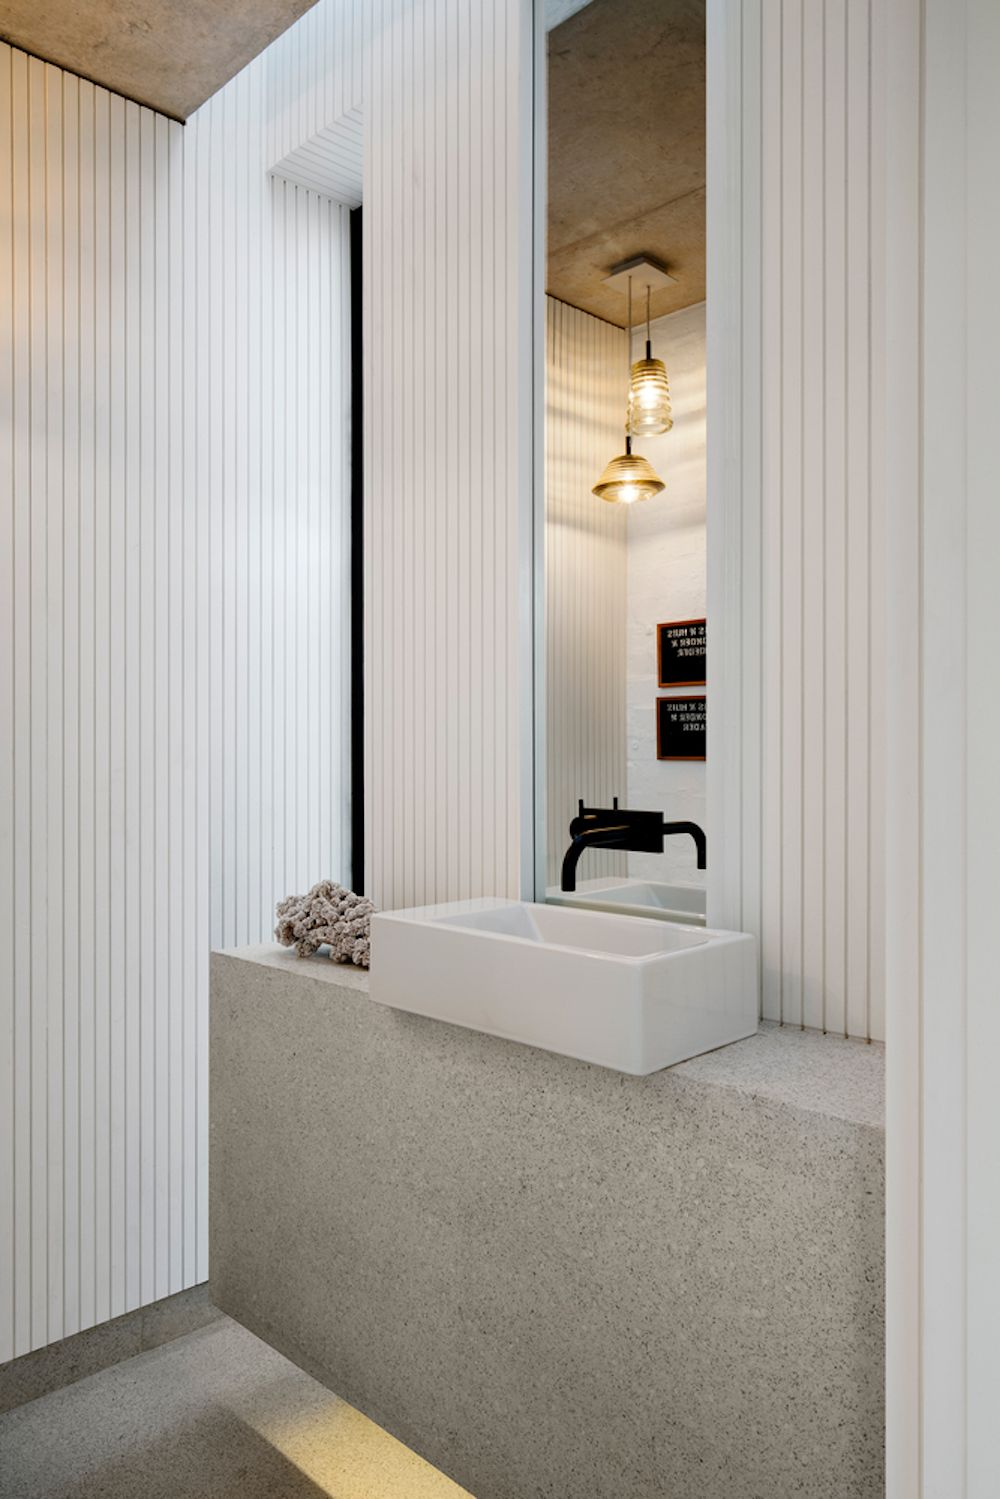 The interior design is simple, modern and sophisticated and this balance is maintained in all the rooms, this one included